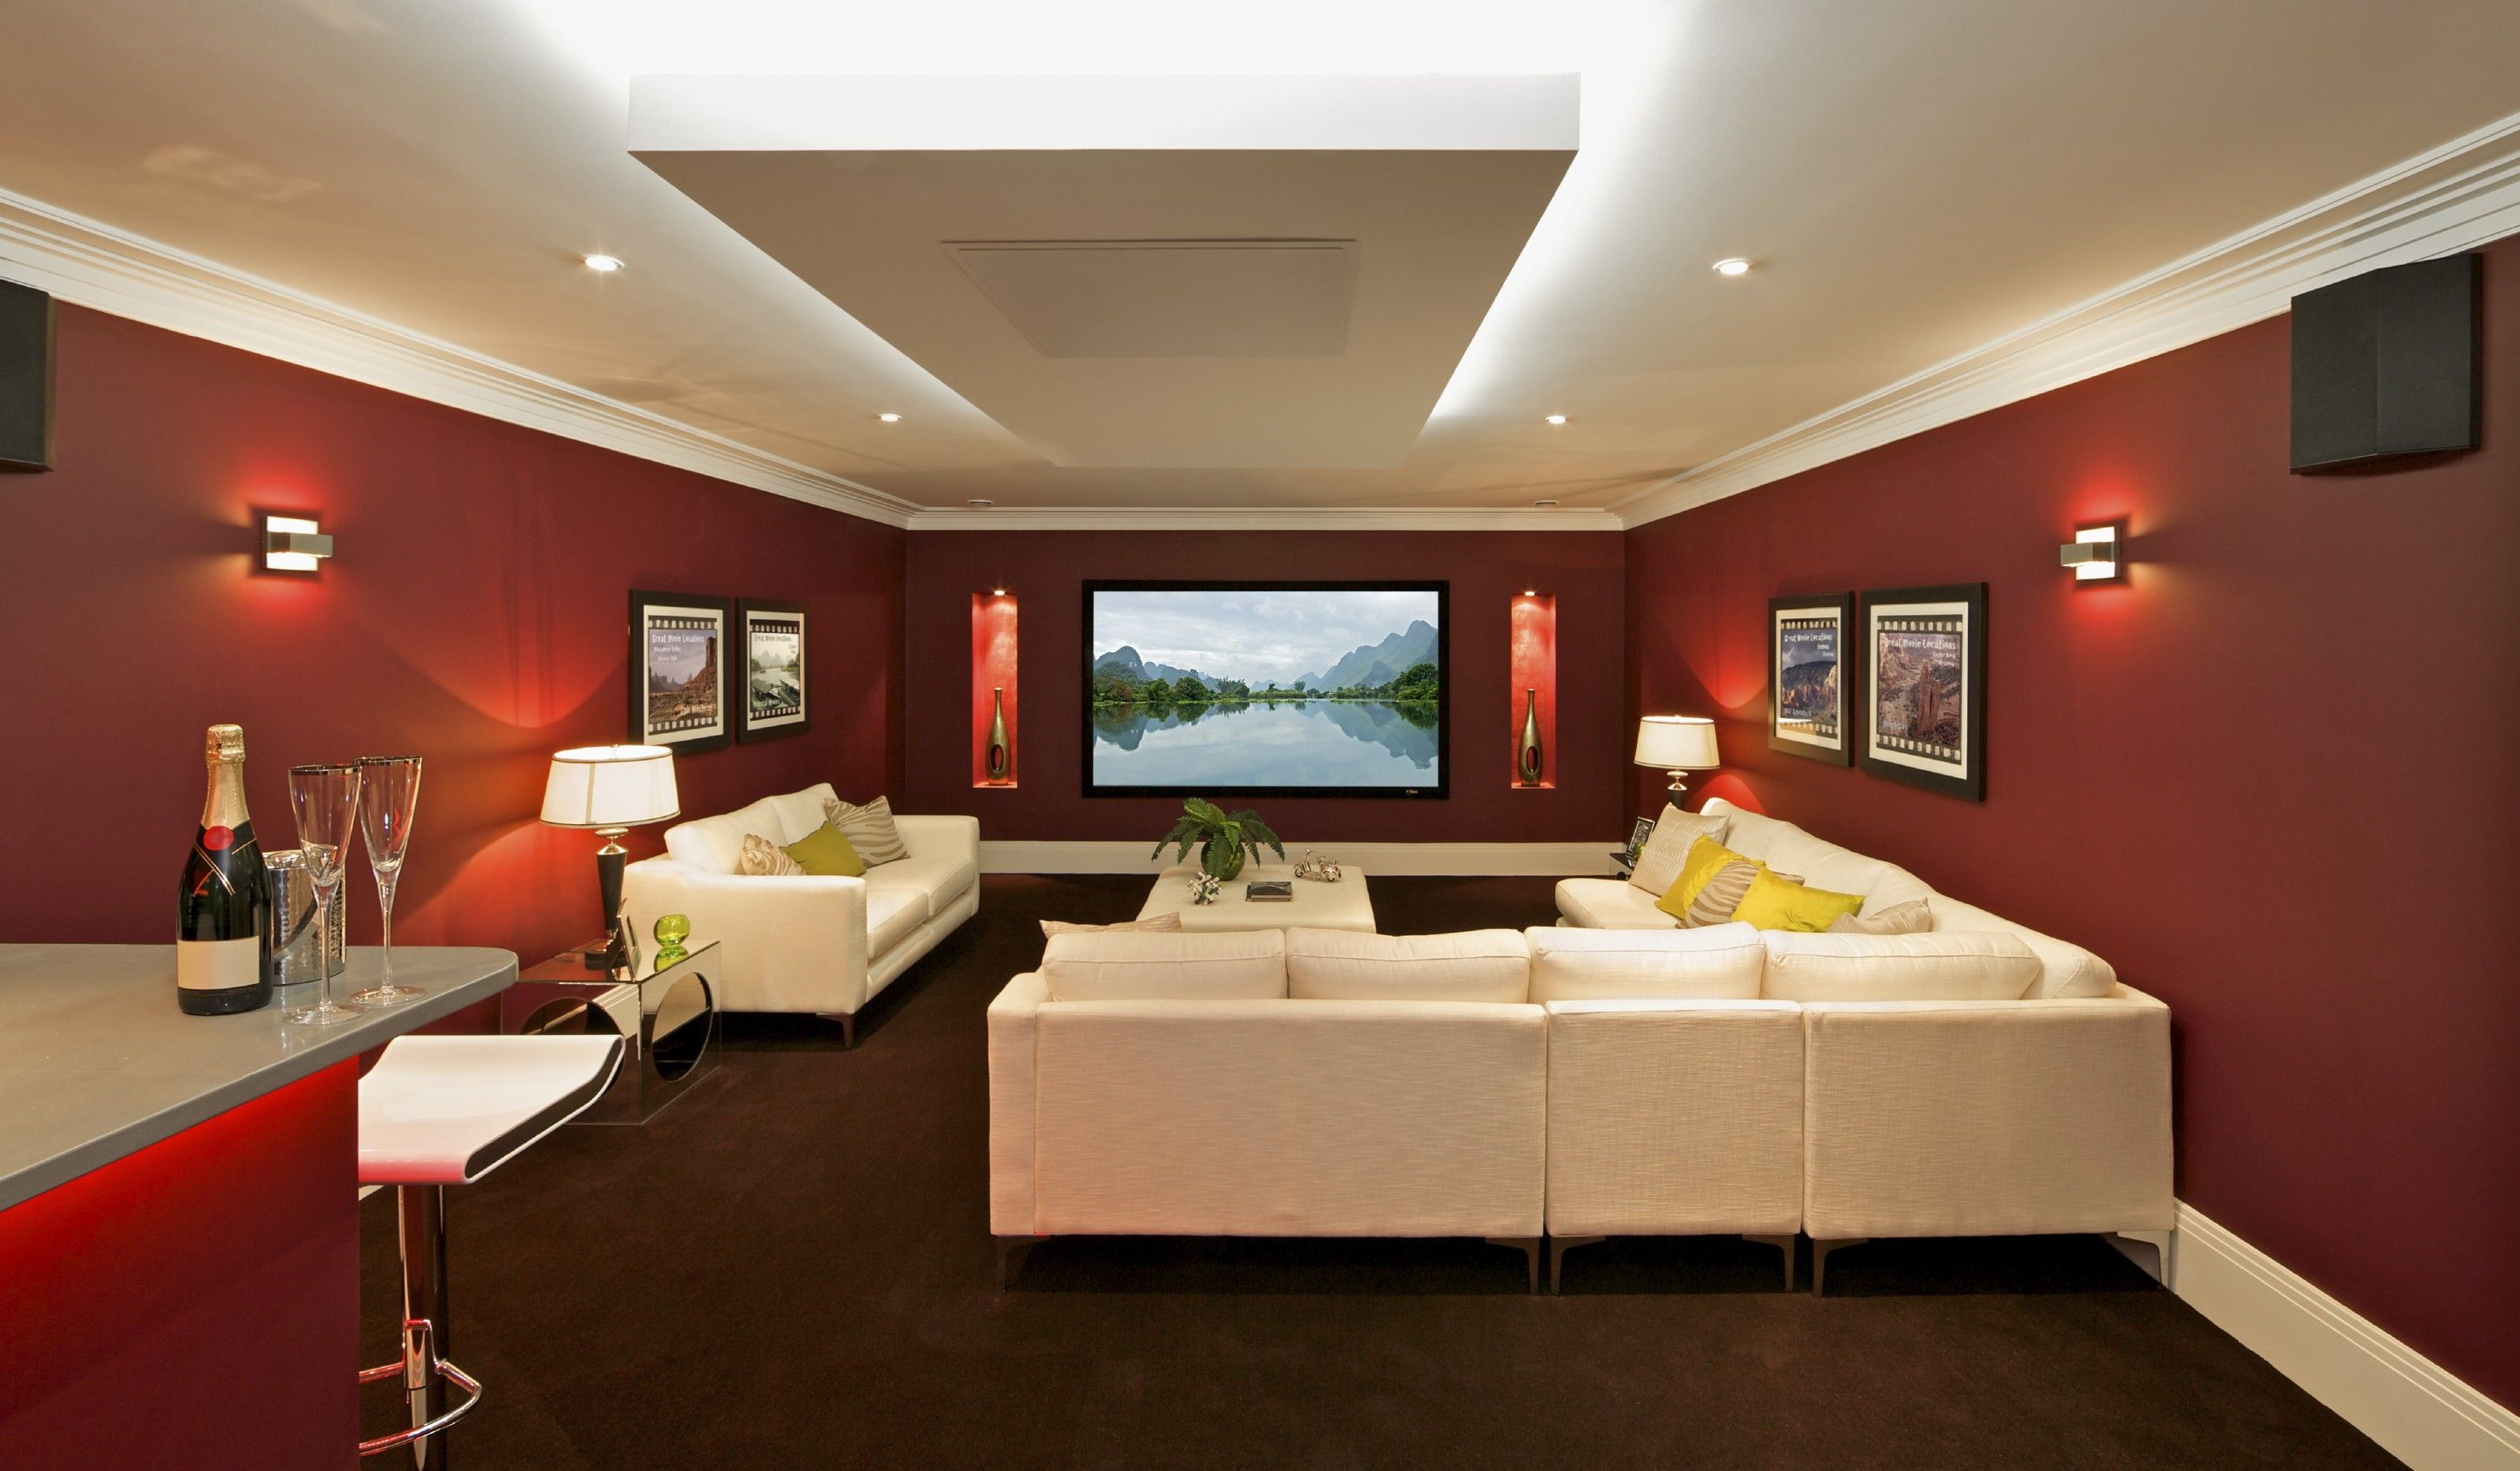 Basement entertainment room - Find This Pin And More On Decorating Appealing Movie Theater Room